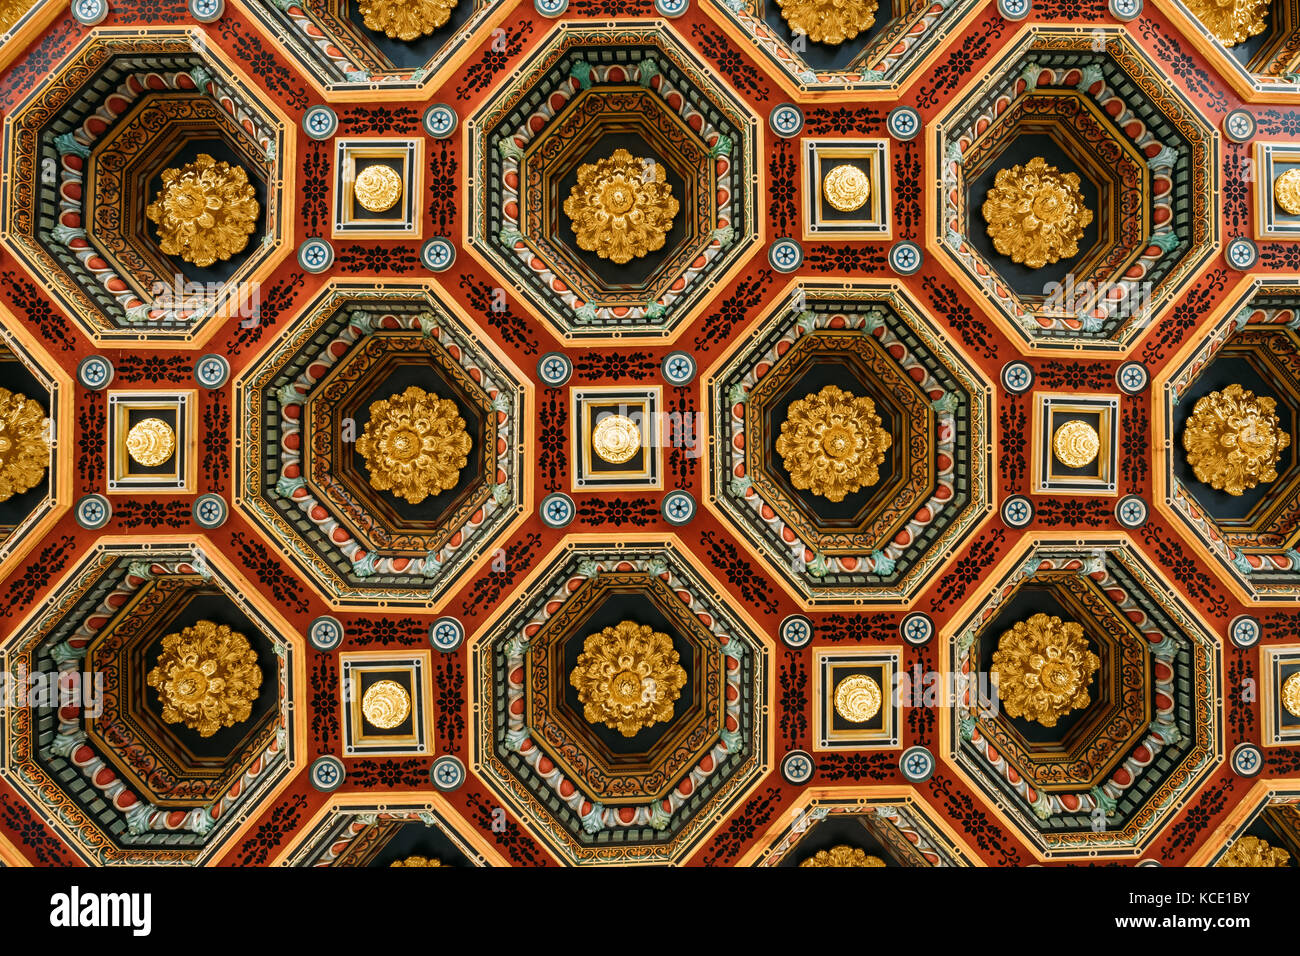 Mir, Belarus - September 1, 2016: Ceiling Roof In The Dining Room Izba In Castle Complex Museum. Famous Landmark, - Stock Image